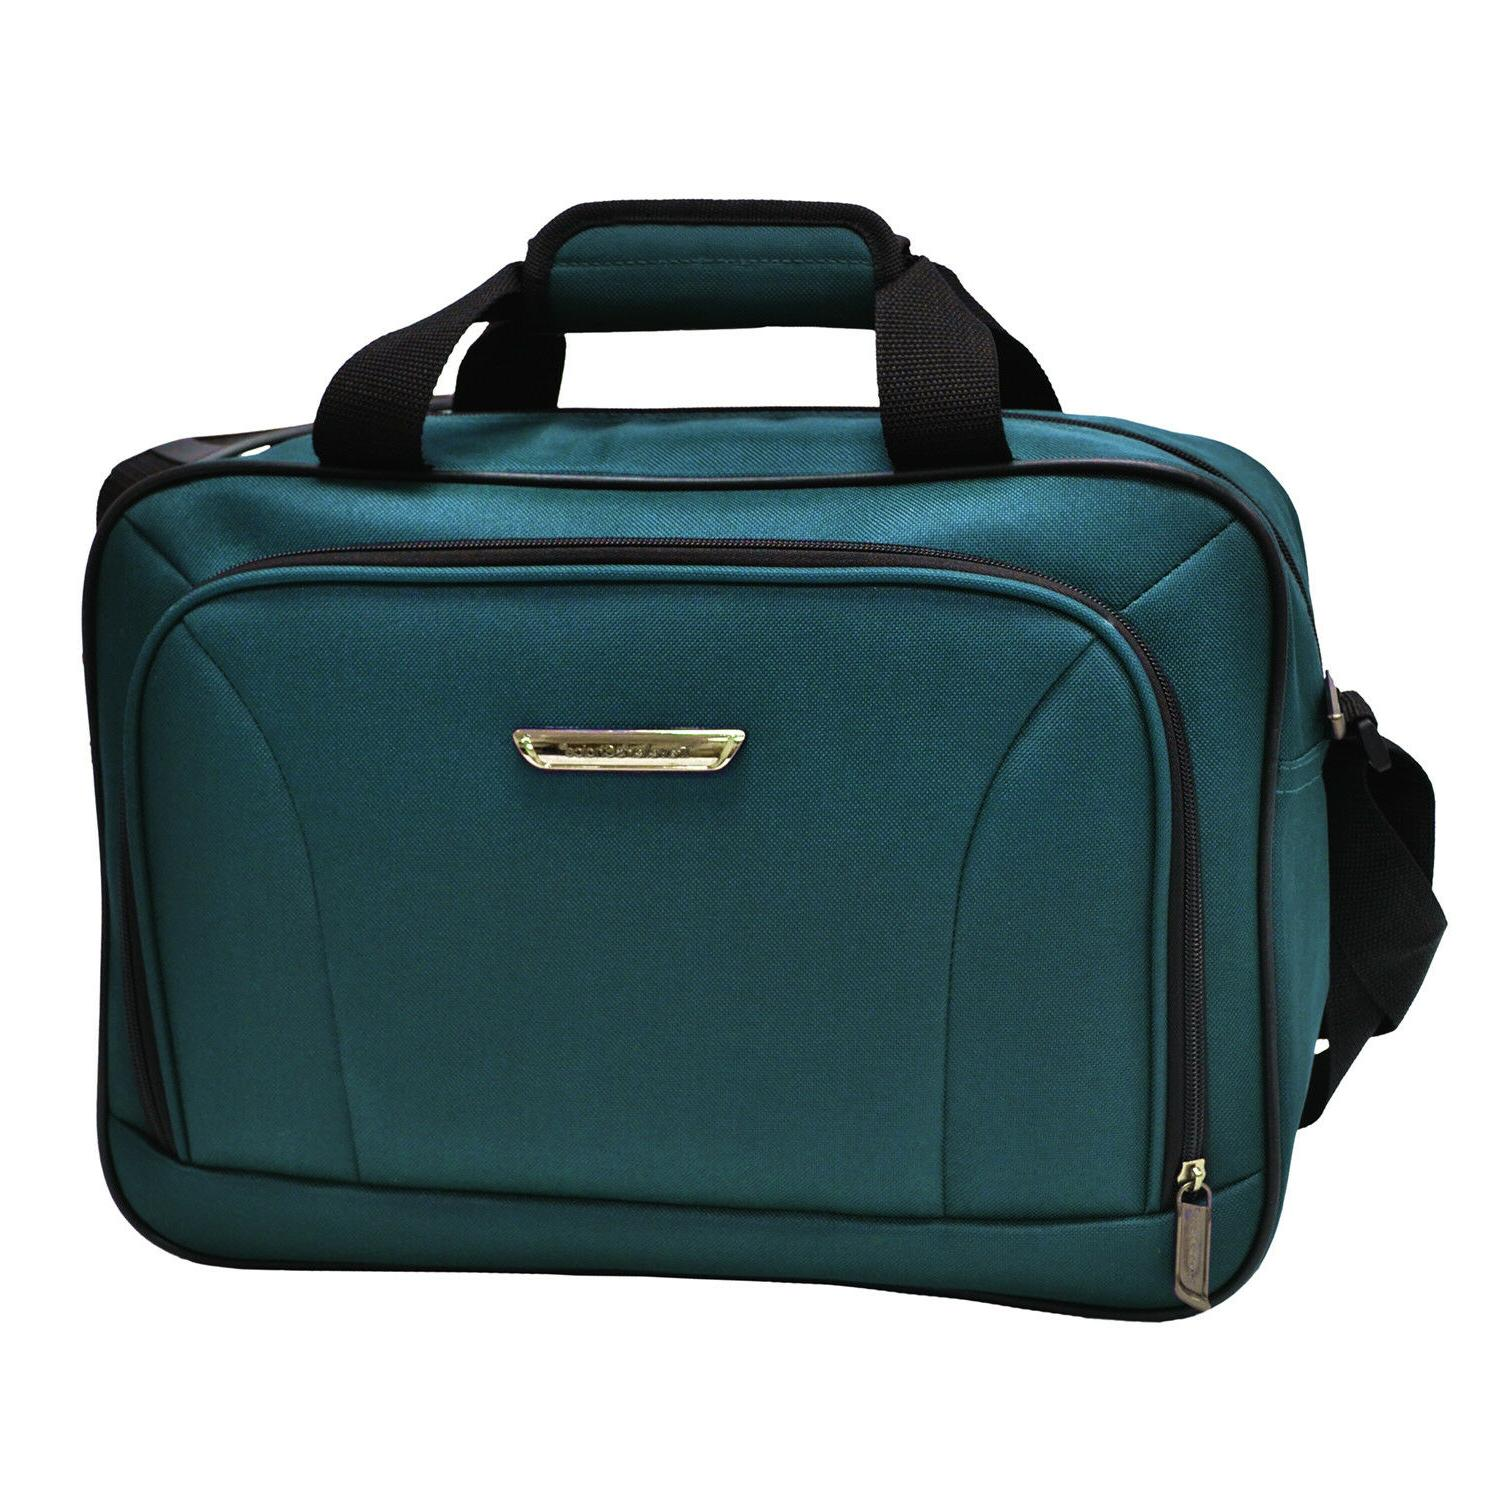 Traveler's Choice Ultimate Expandable Luggage Tote